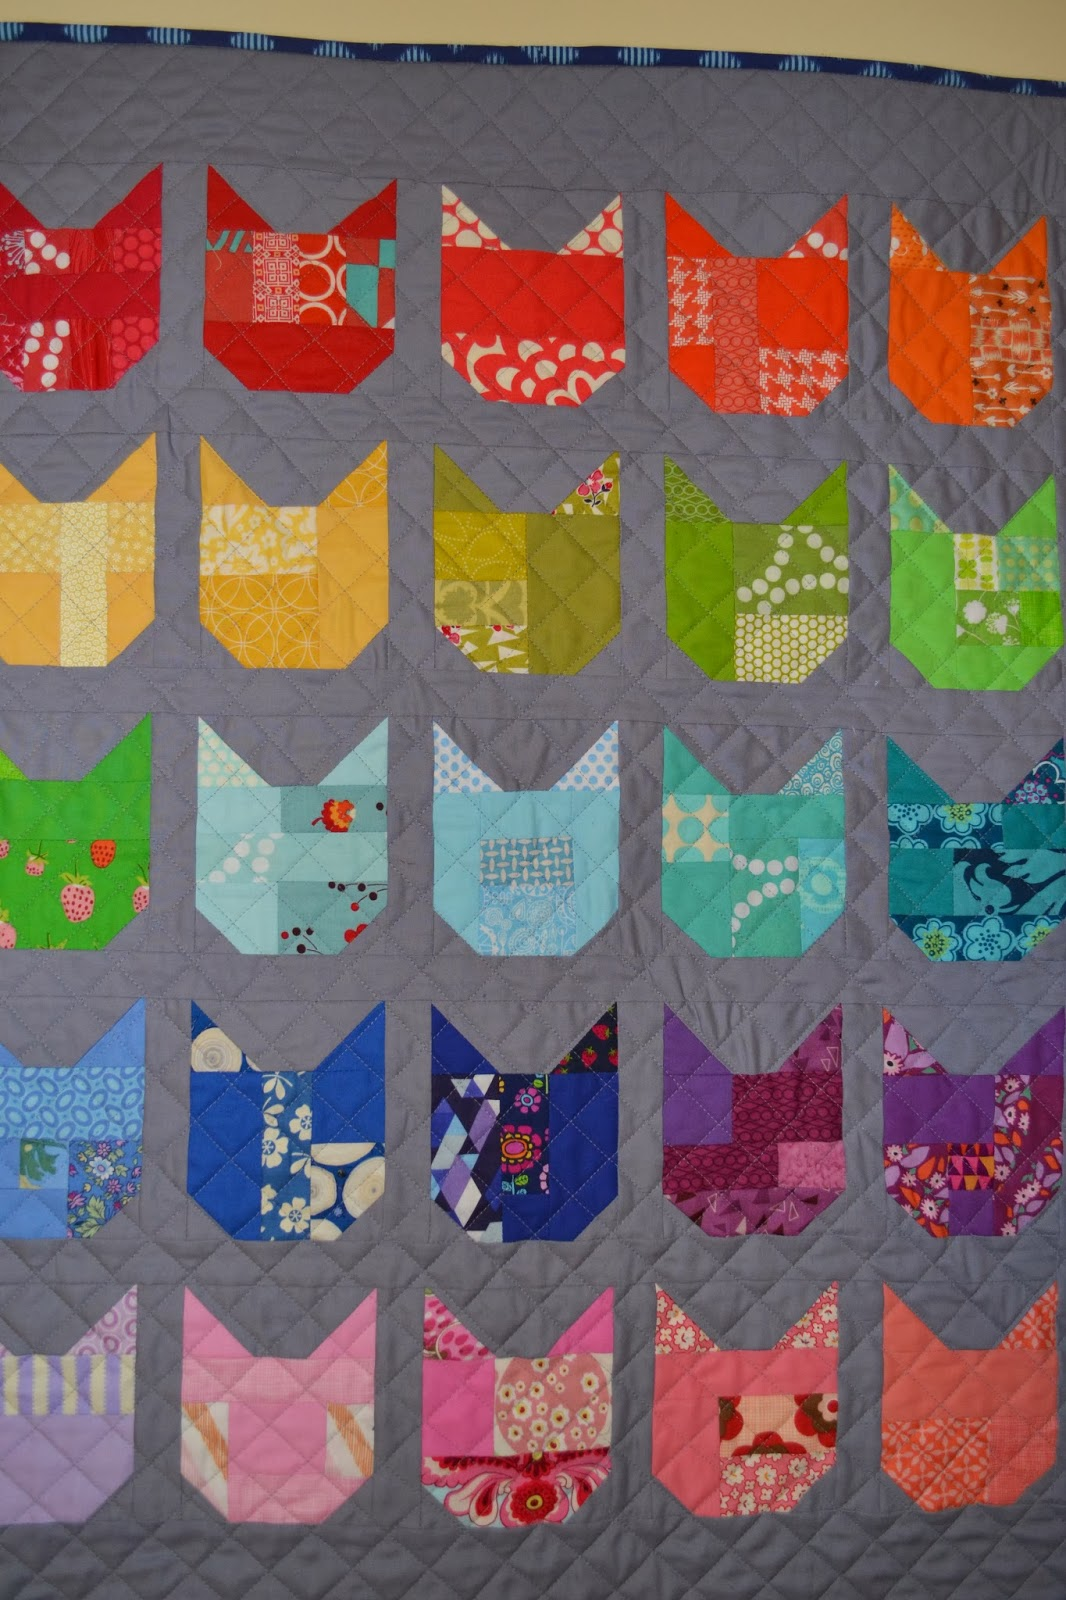 http://seemaryquilt.blogspot.com/2014/02/friday-finish-catvent-wall-hanging.html